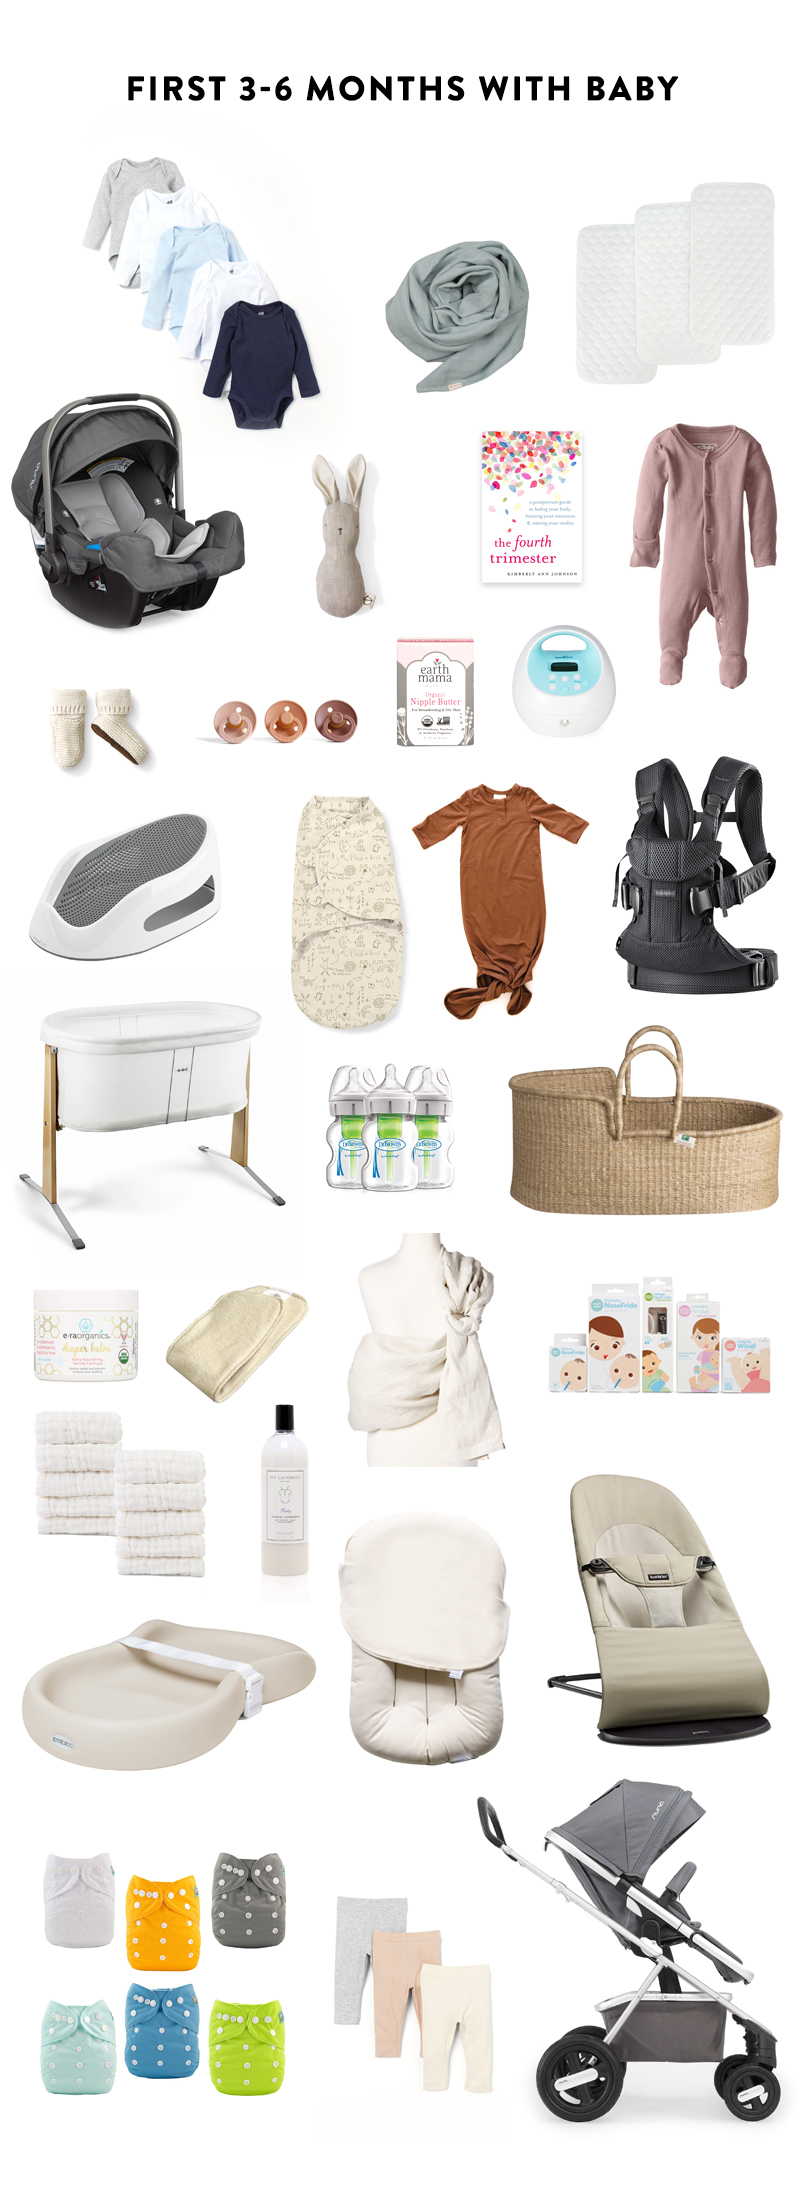 List of Items for Babies first 6 months - the list of the best items for a minimalist baby registry